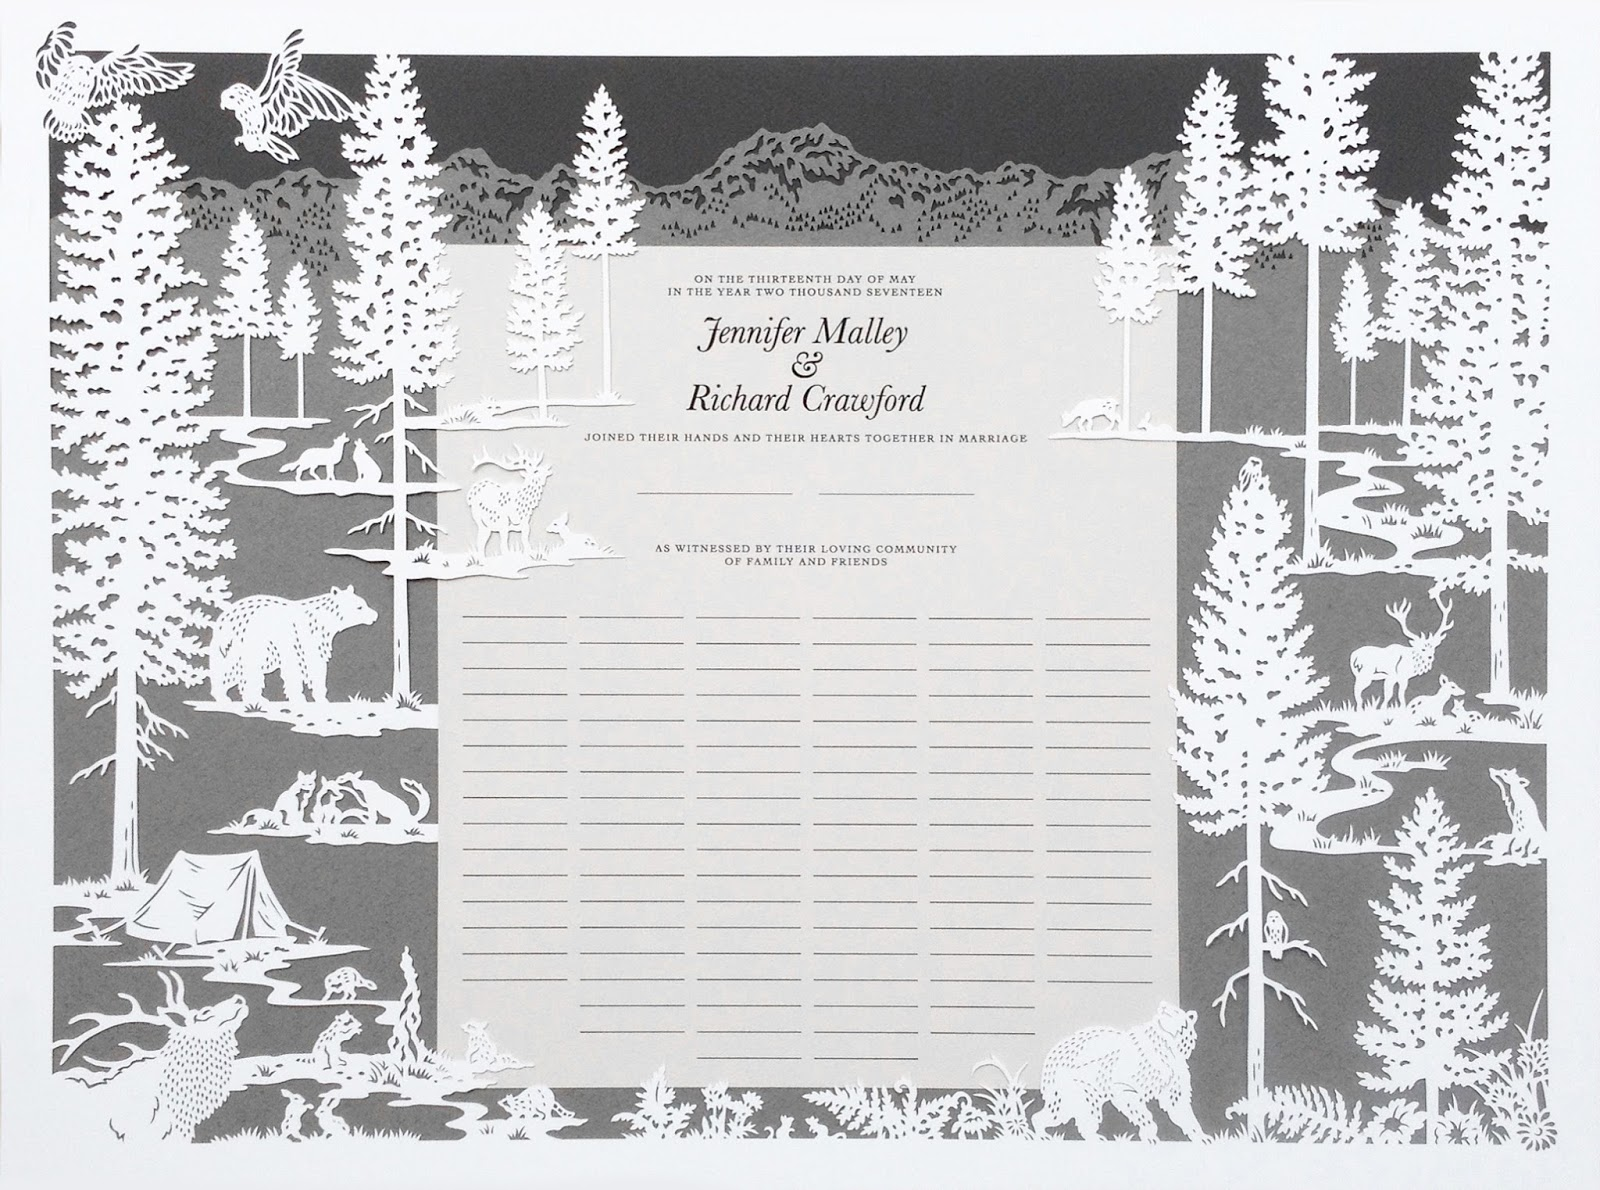 Washington state park quaker certificate, expertly designed and papercut by hand by Naomi Shiek